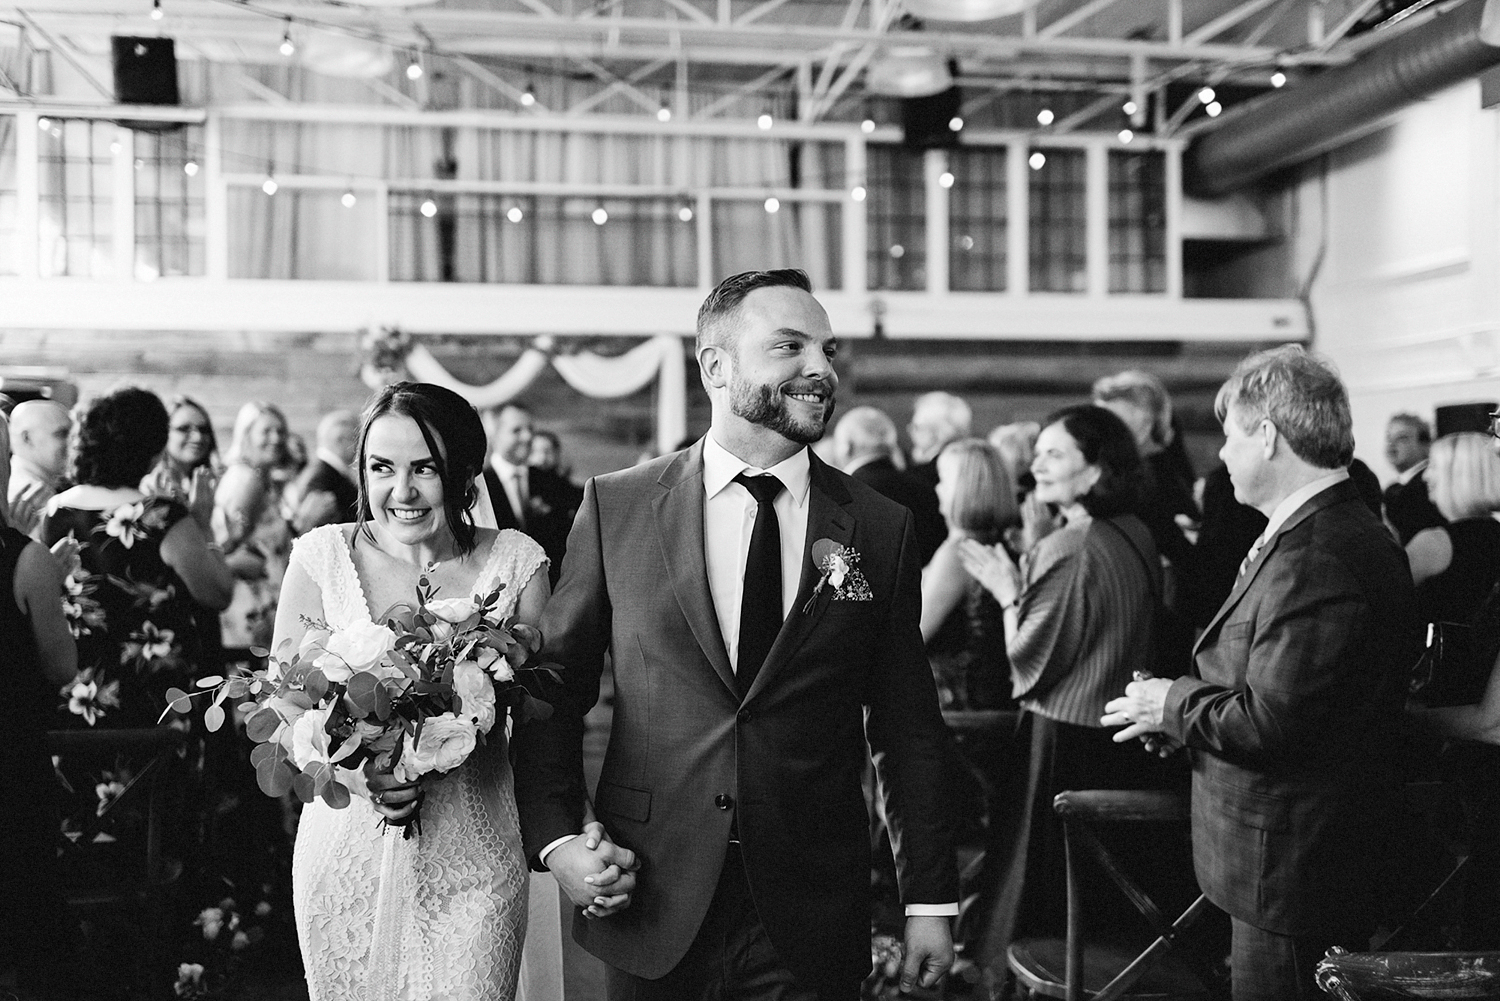 Best-Wedding-photographers-Toronto-NAtural-Candid-wedding-photography-Airship37-Wedding-Ceremony-Entrance-Candid-Moment-Bride-and-Groom-exit-cute-moment.jpg